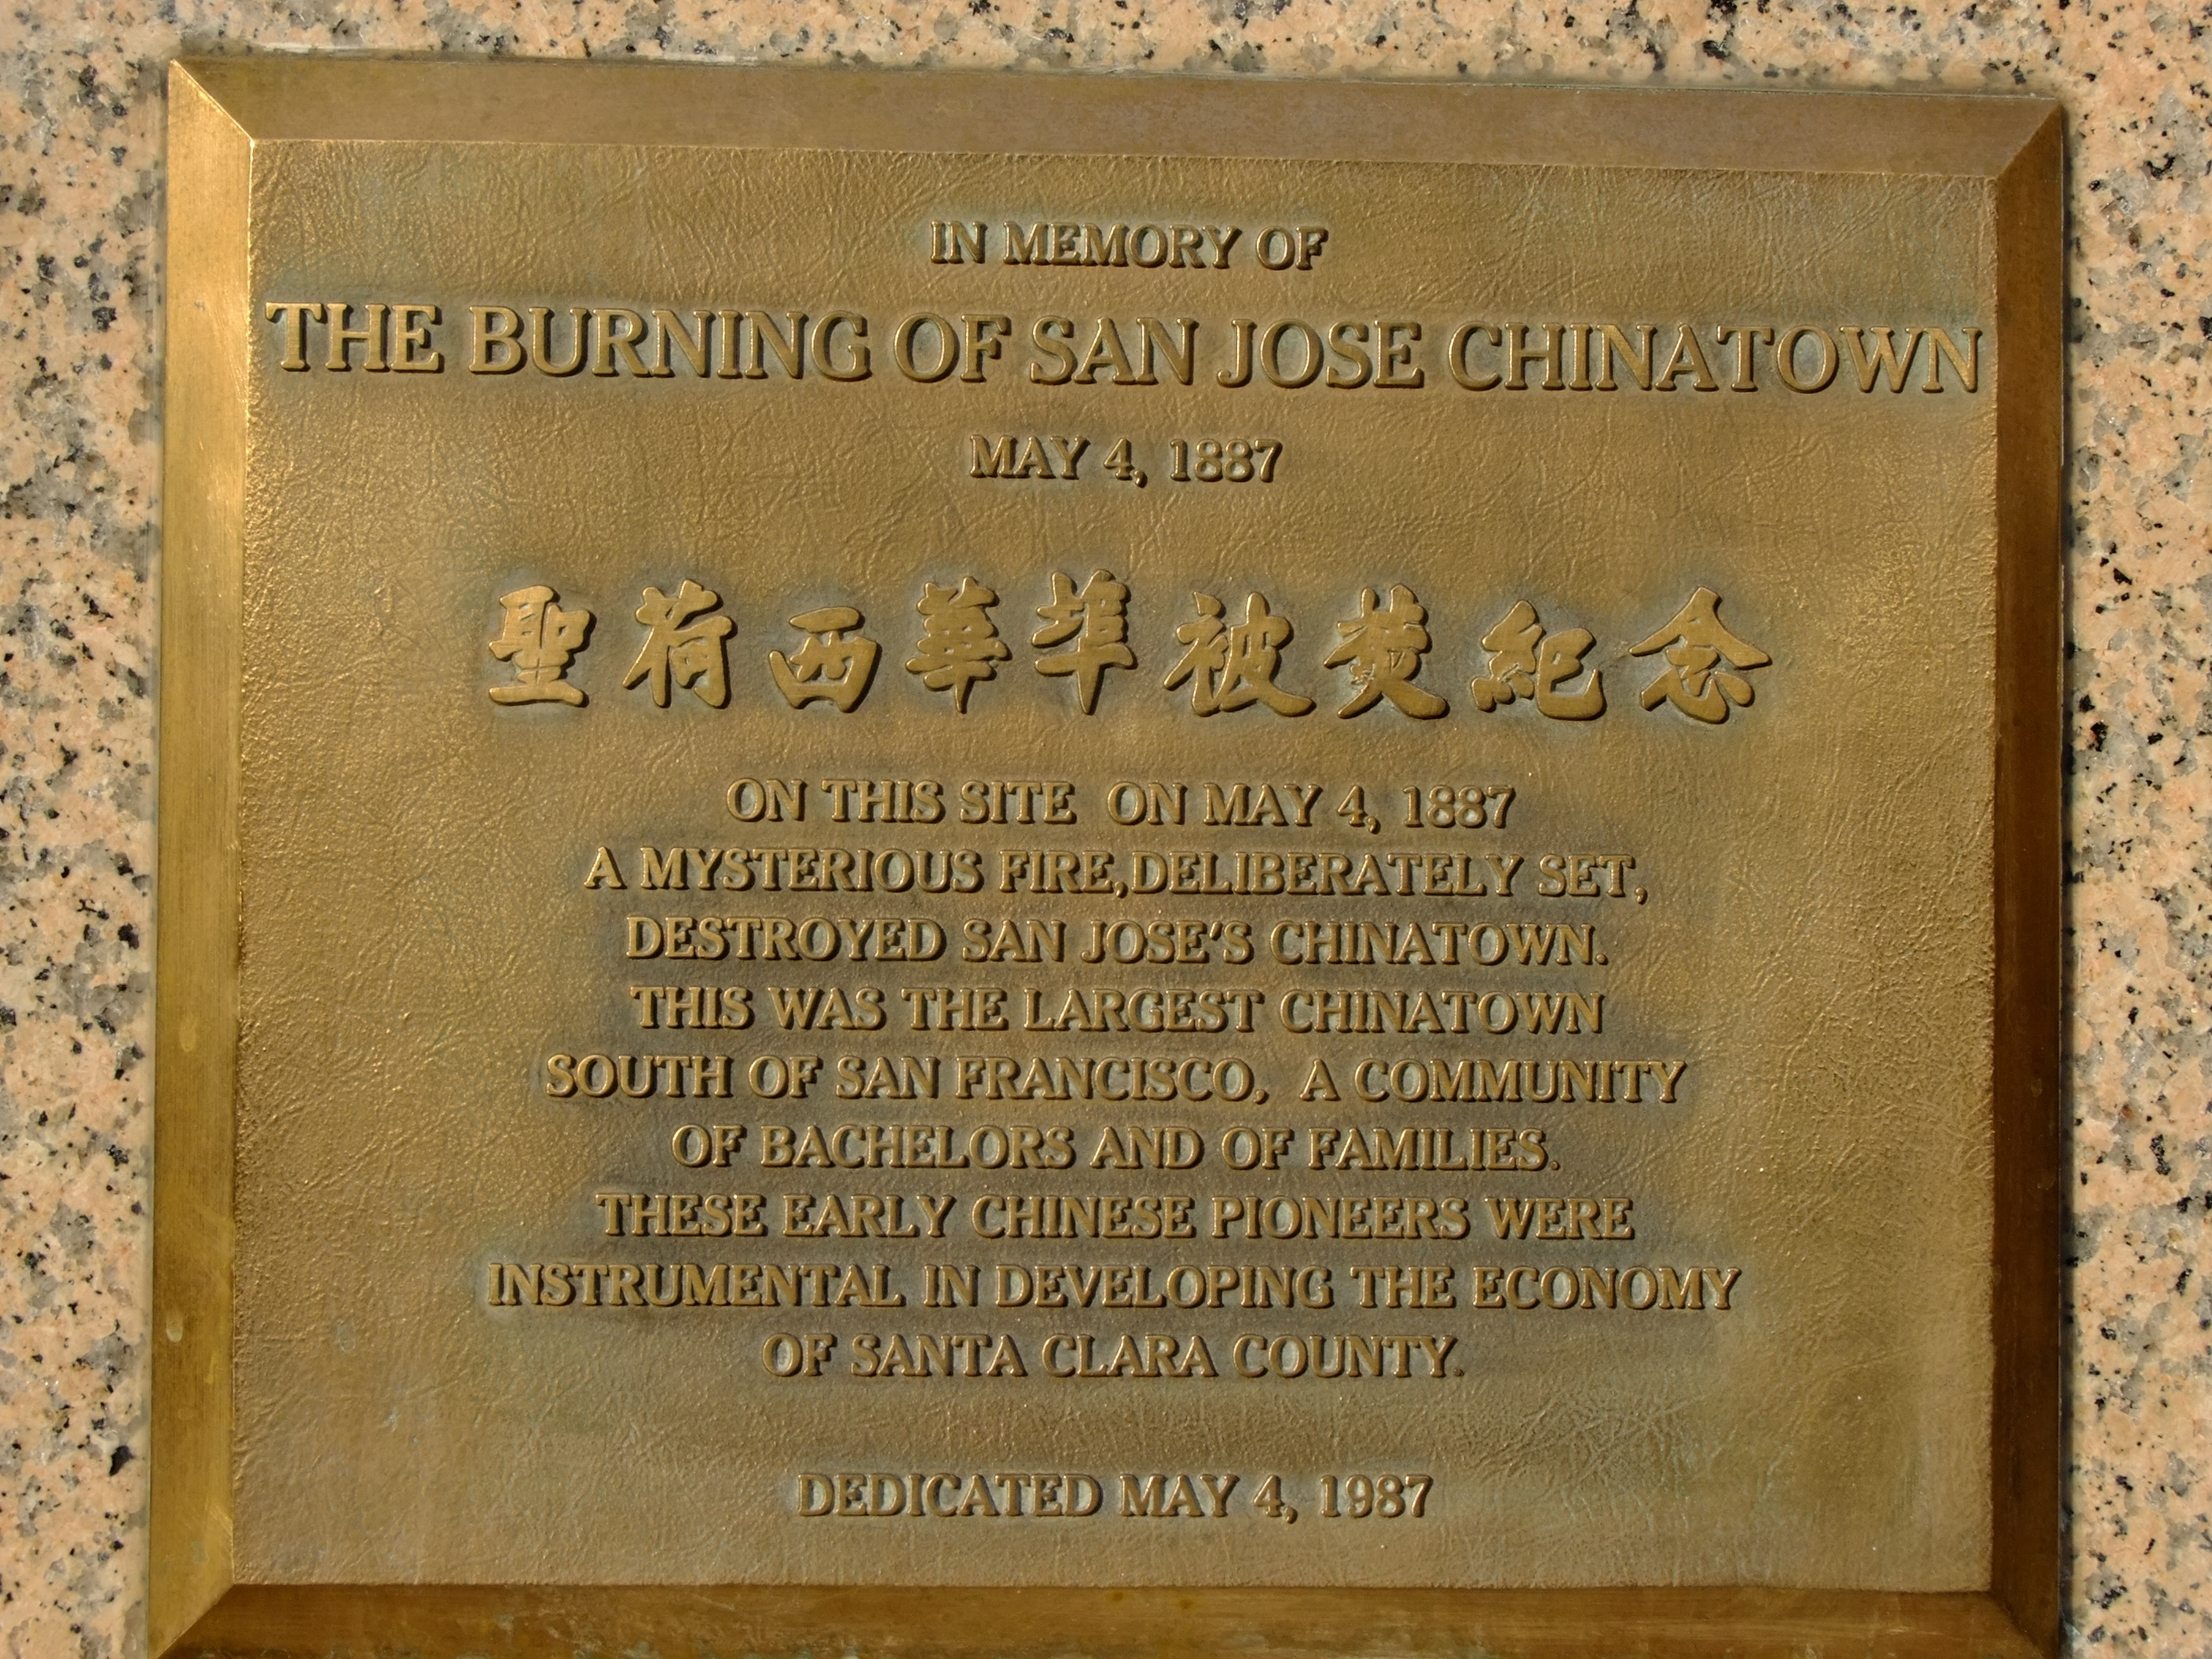 The Burning of San Jose Chinatown Marker